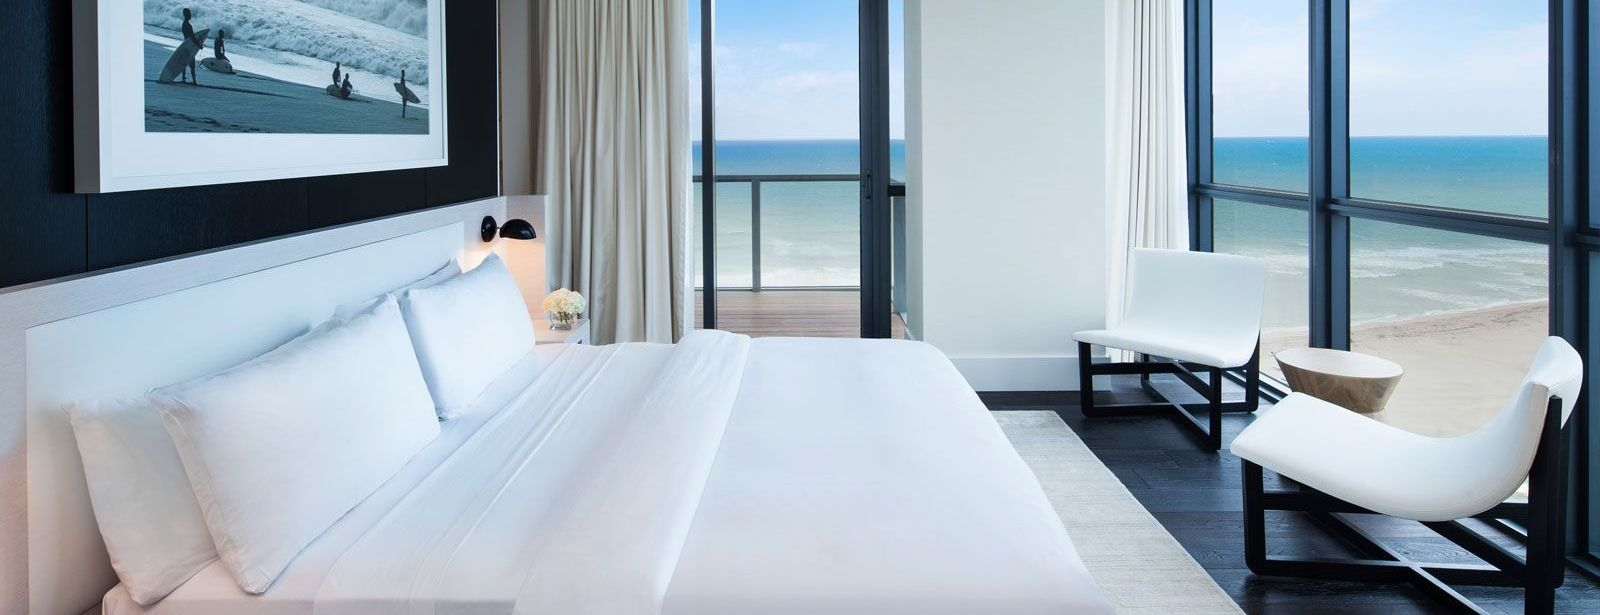 E-Wow Ocean Escape with balcony | W South Beach